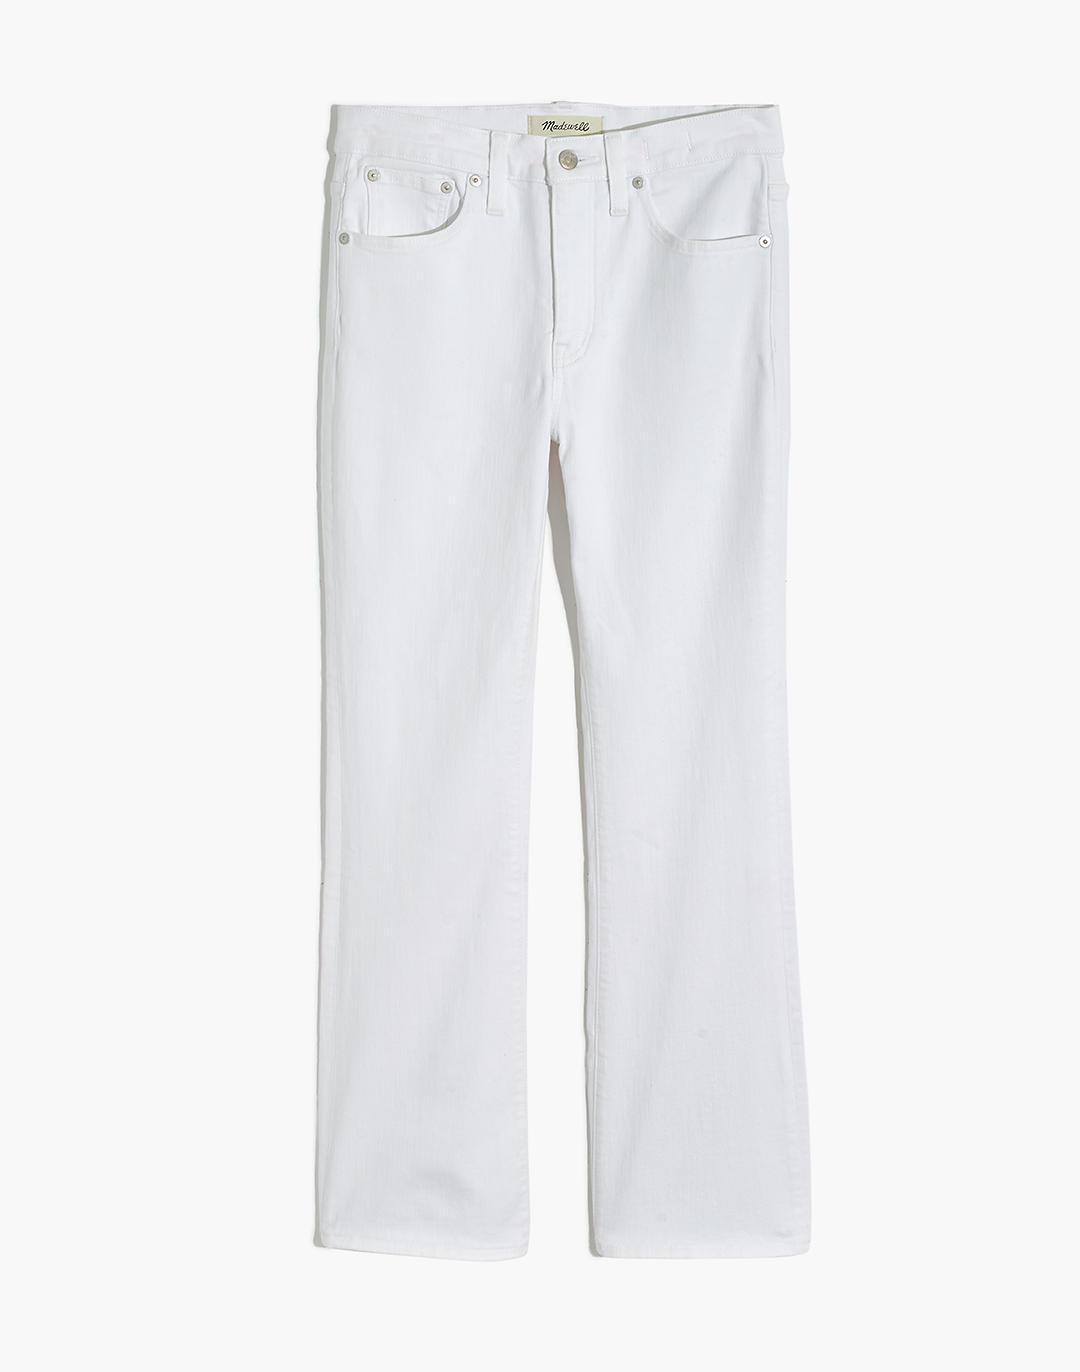 Tall Cali Demi-Boot Jeans in Pure White 4